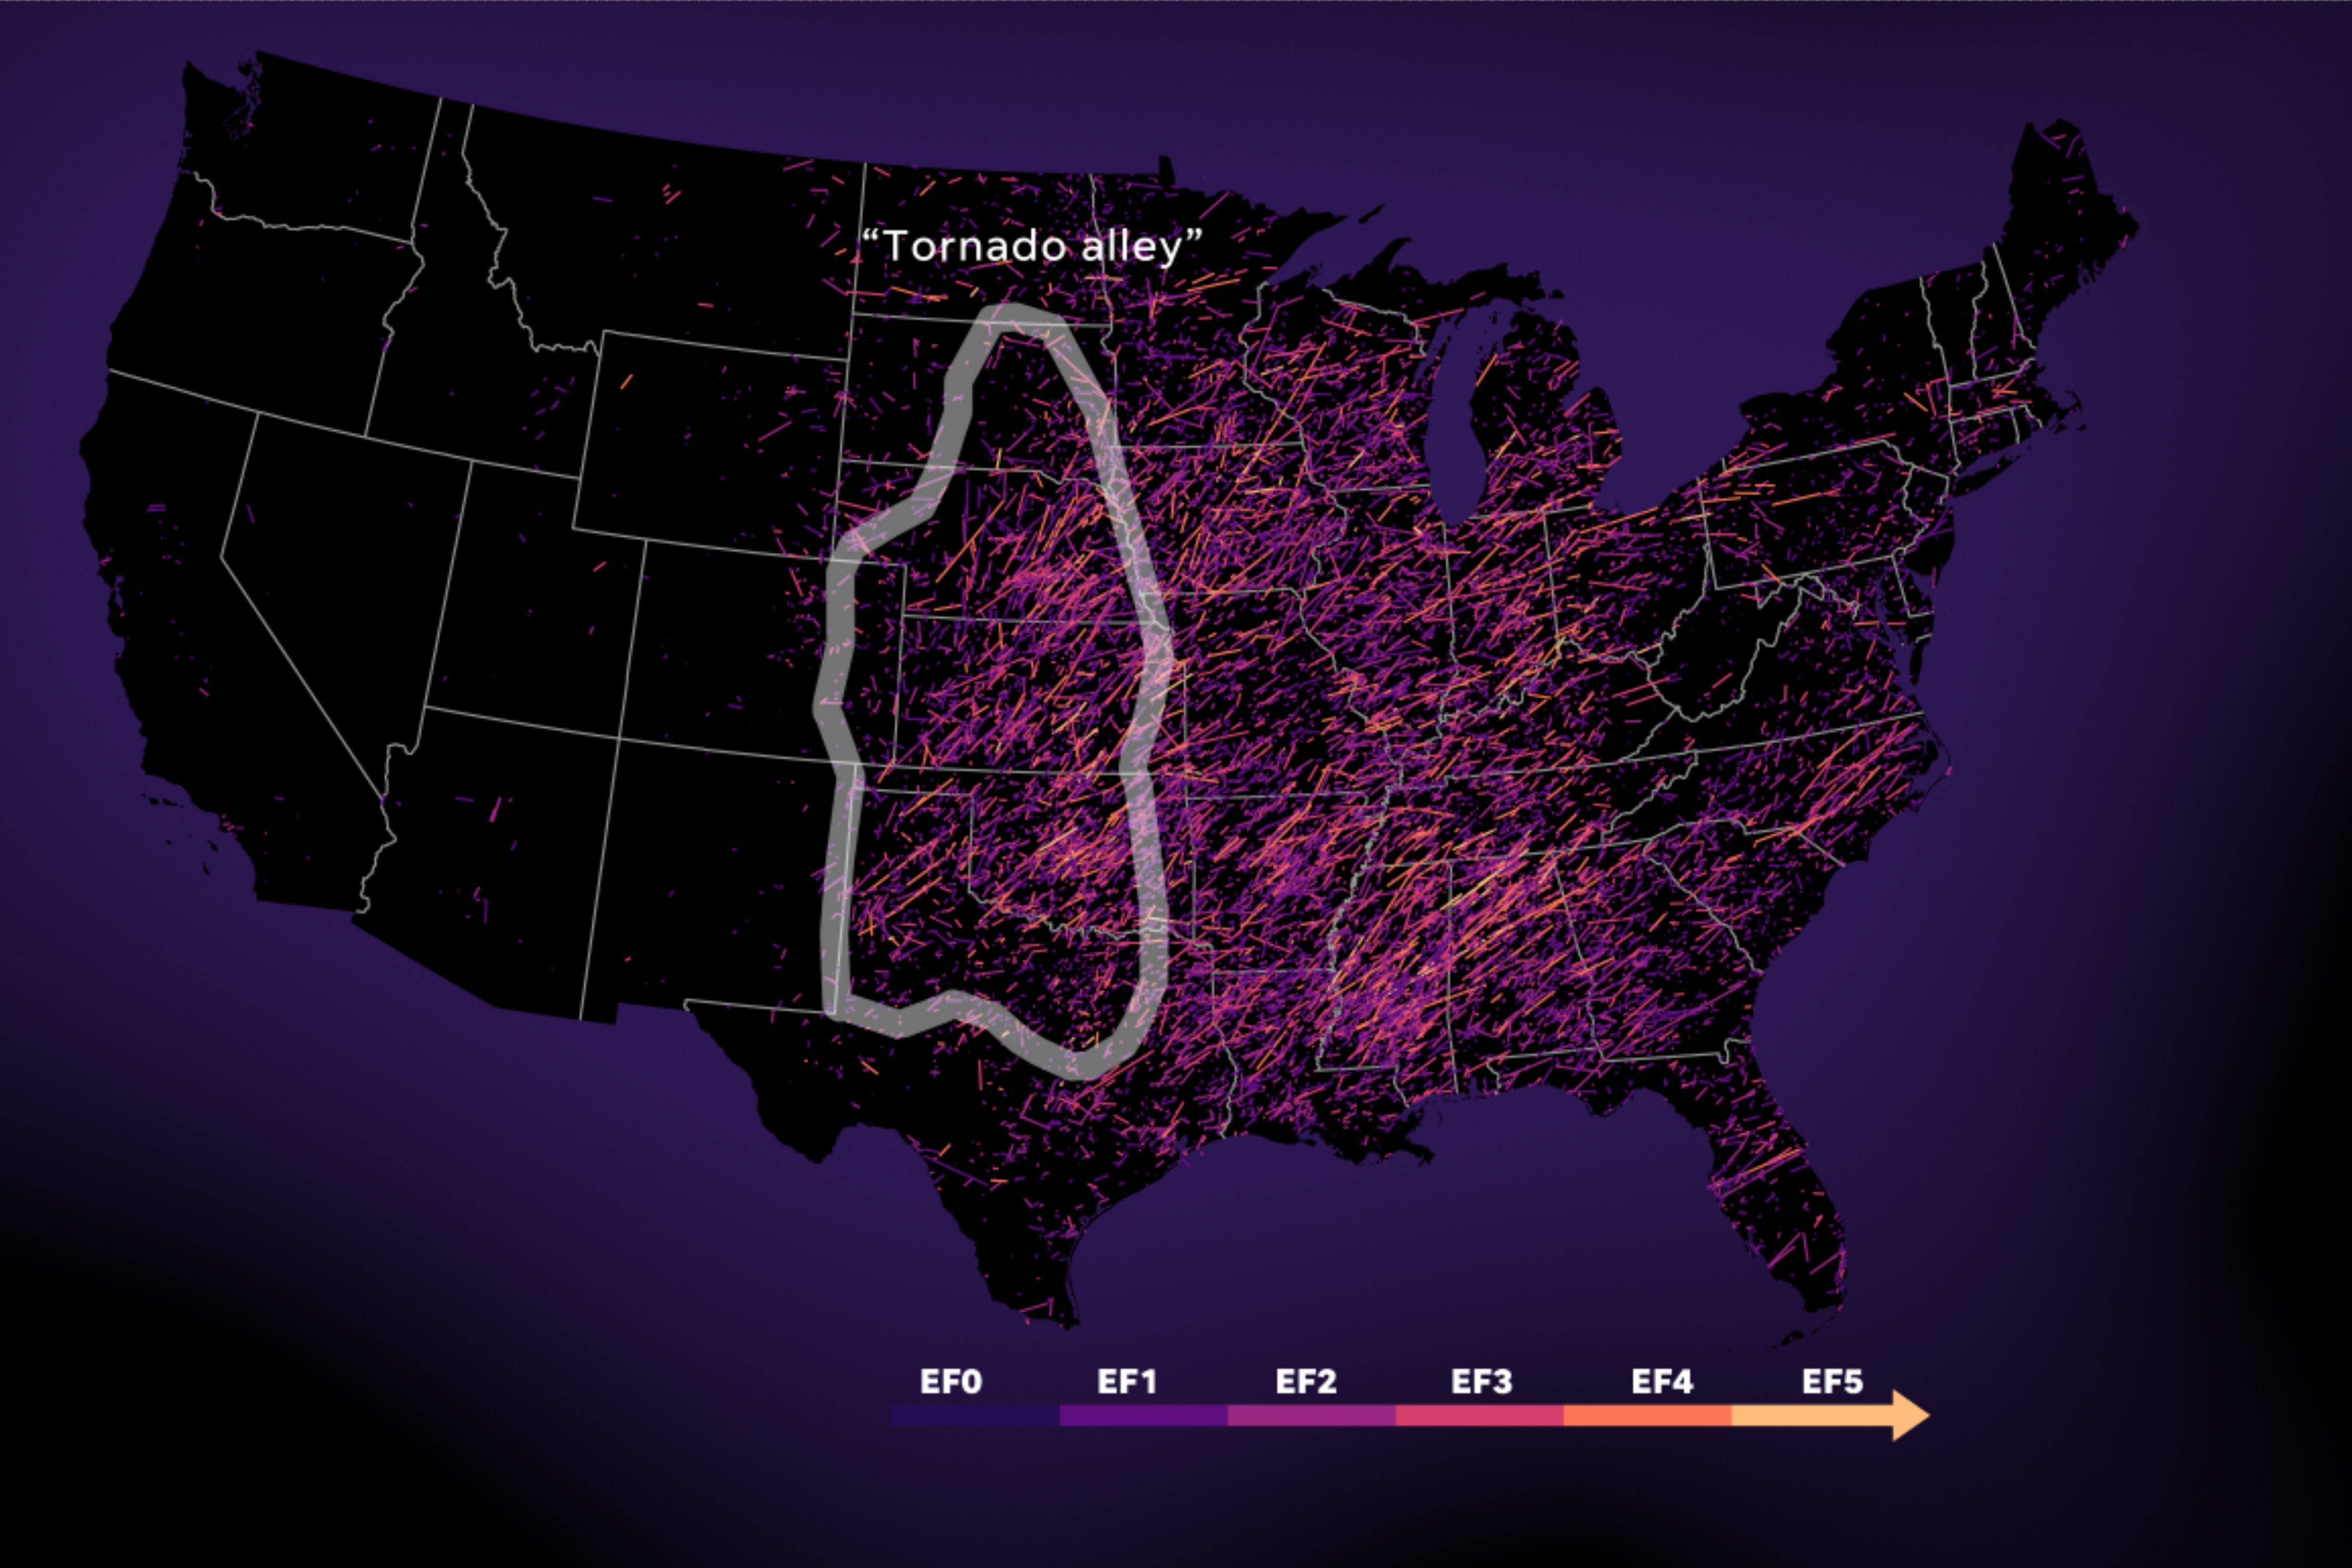 EF1 or greater tornadoes 1950-2019.